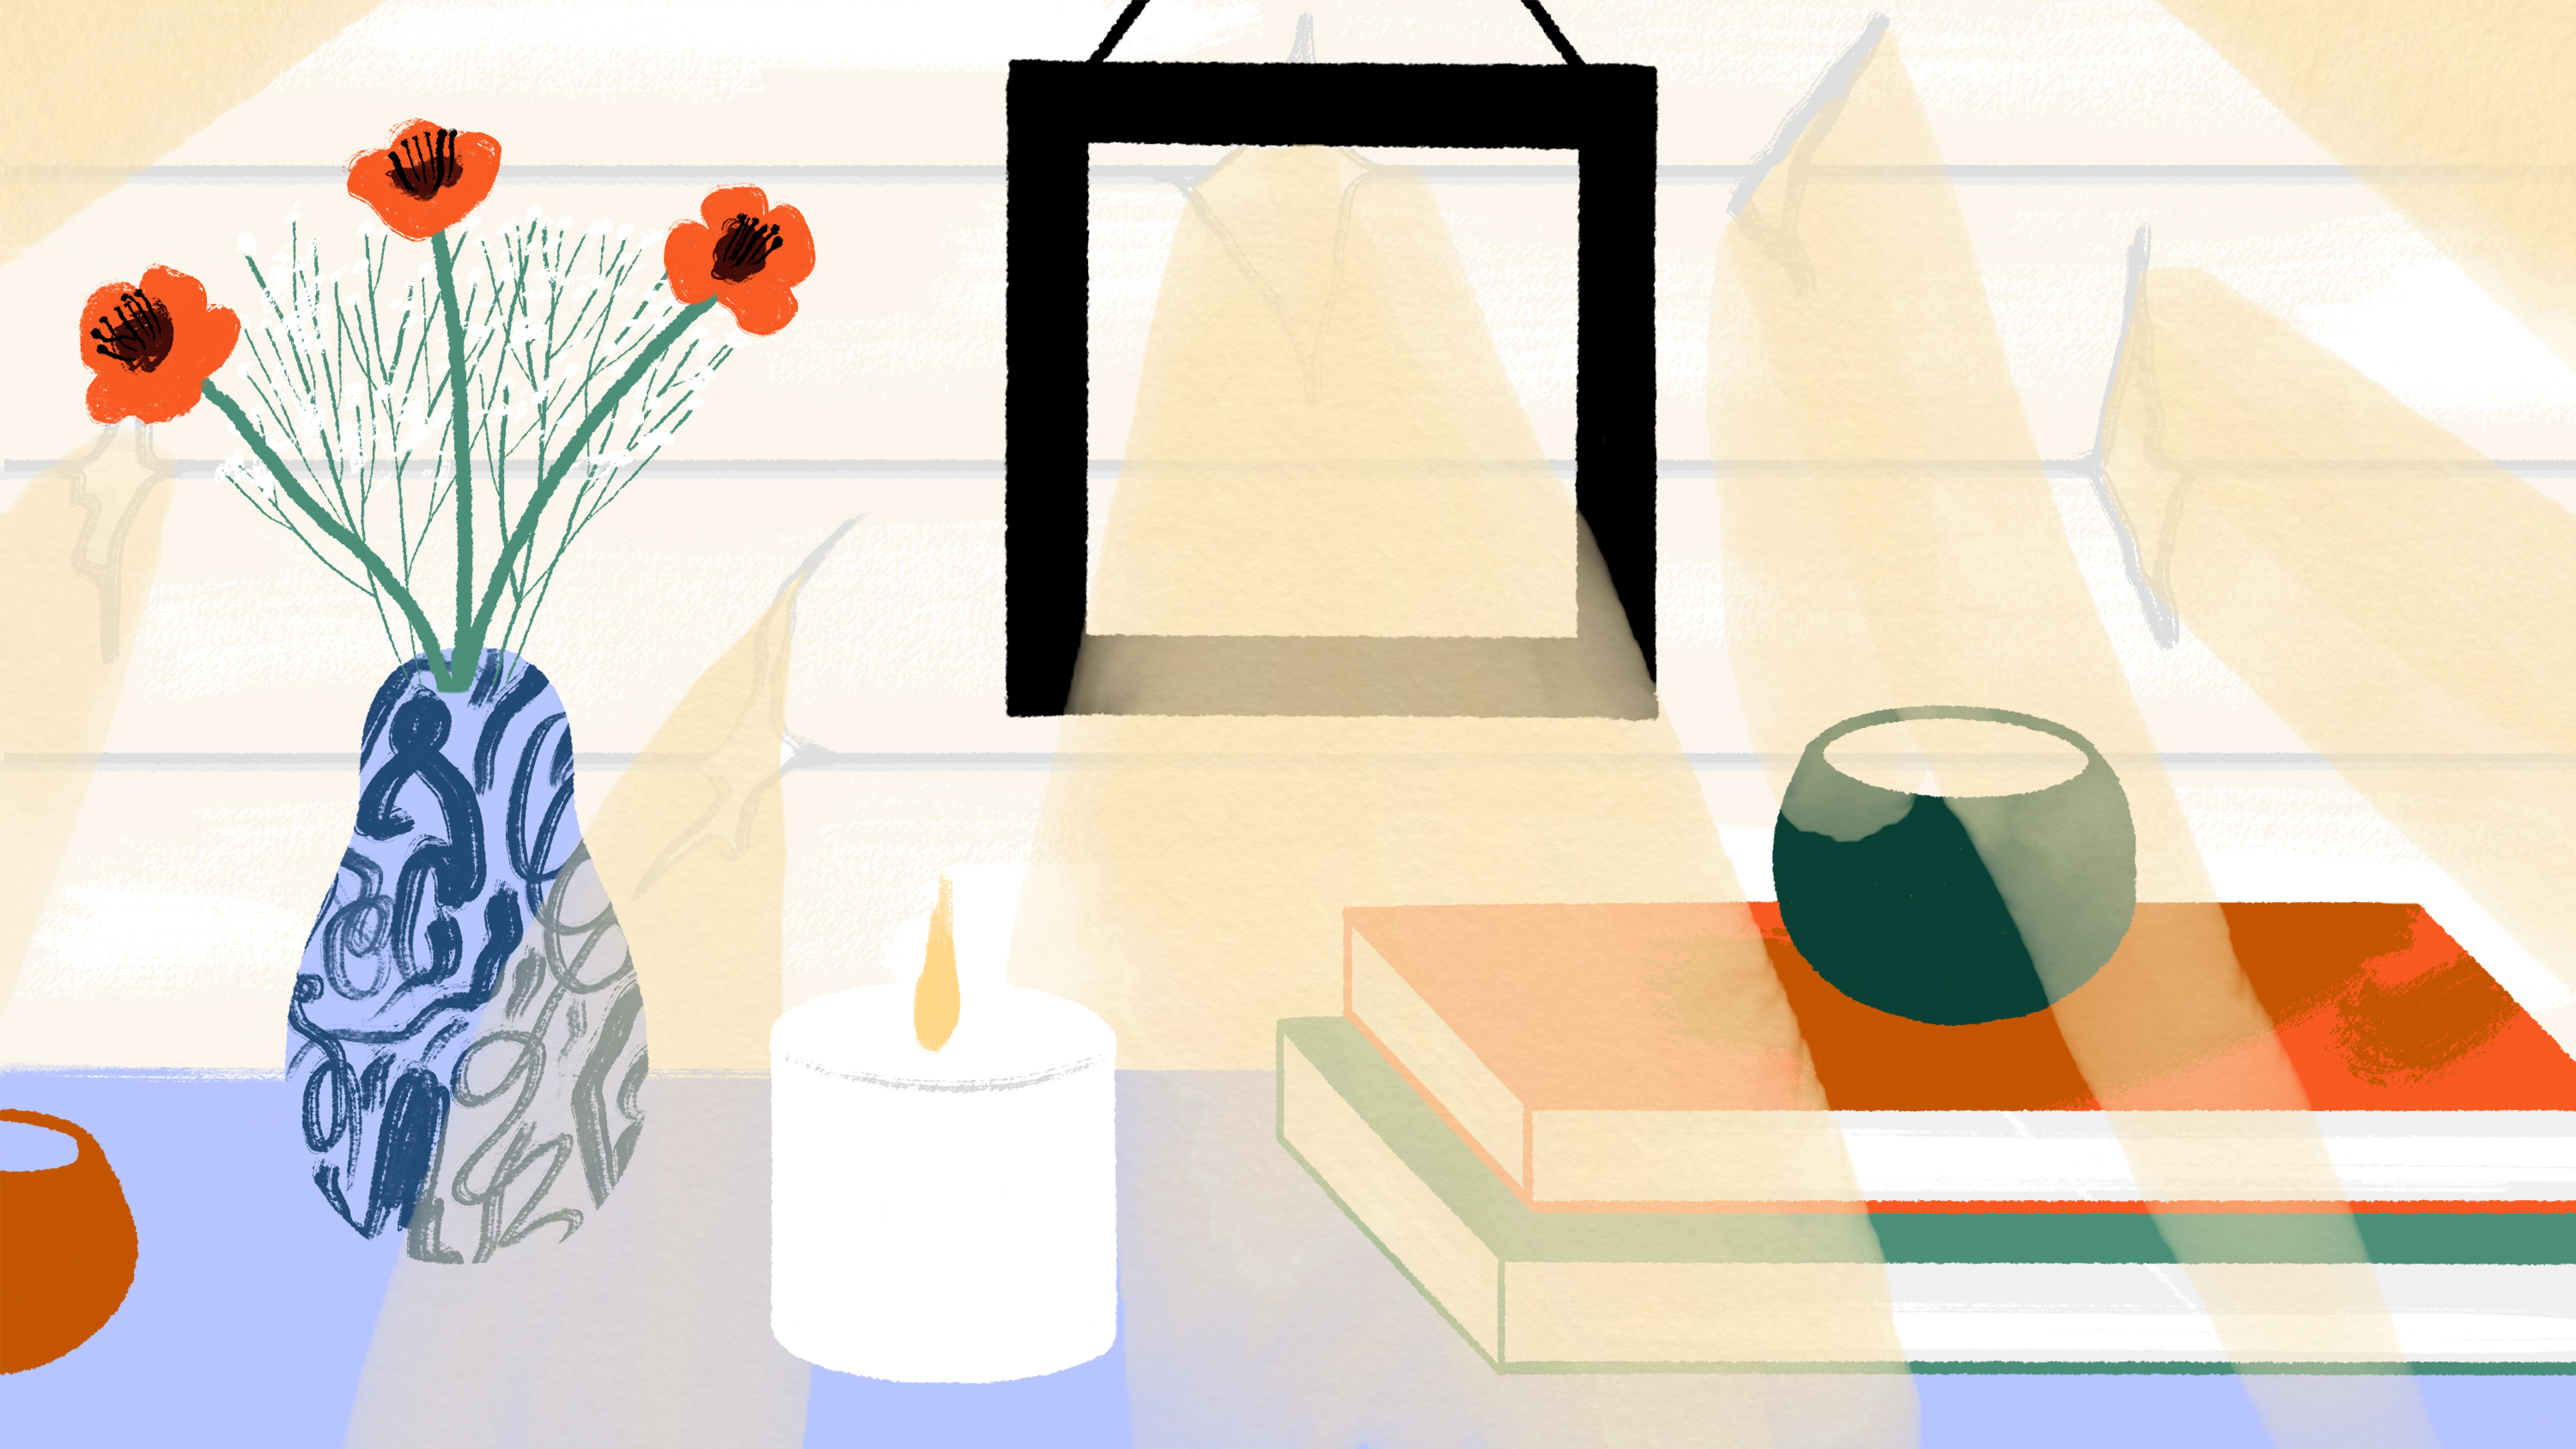 An illustration of a serene table, with a vase of flowers, a stack of books, and light filtering through a window.